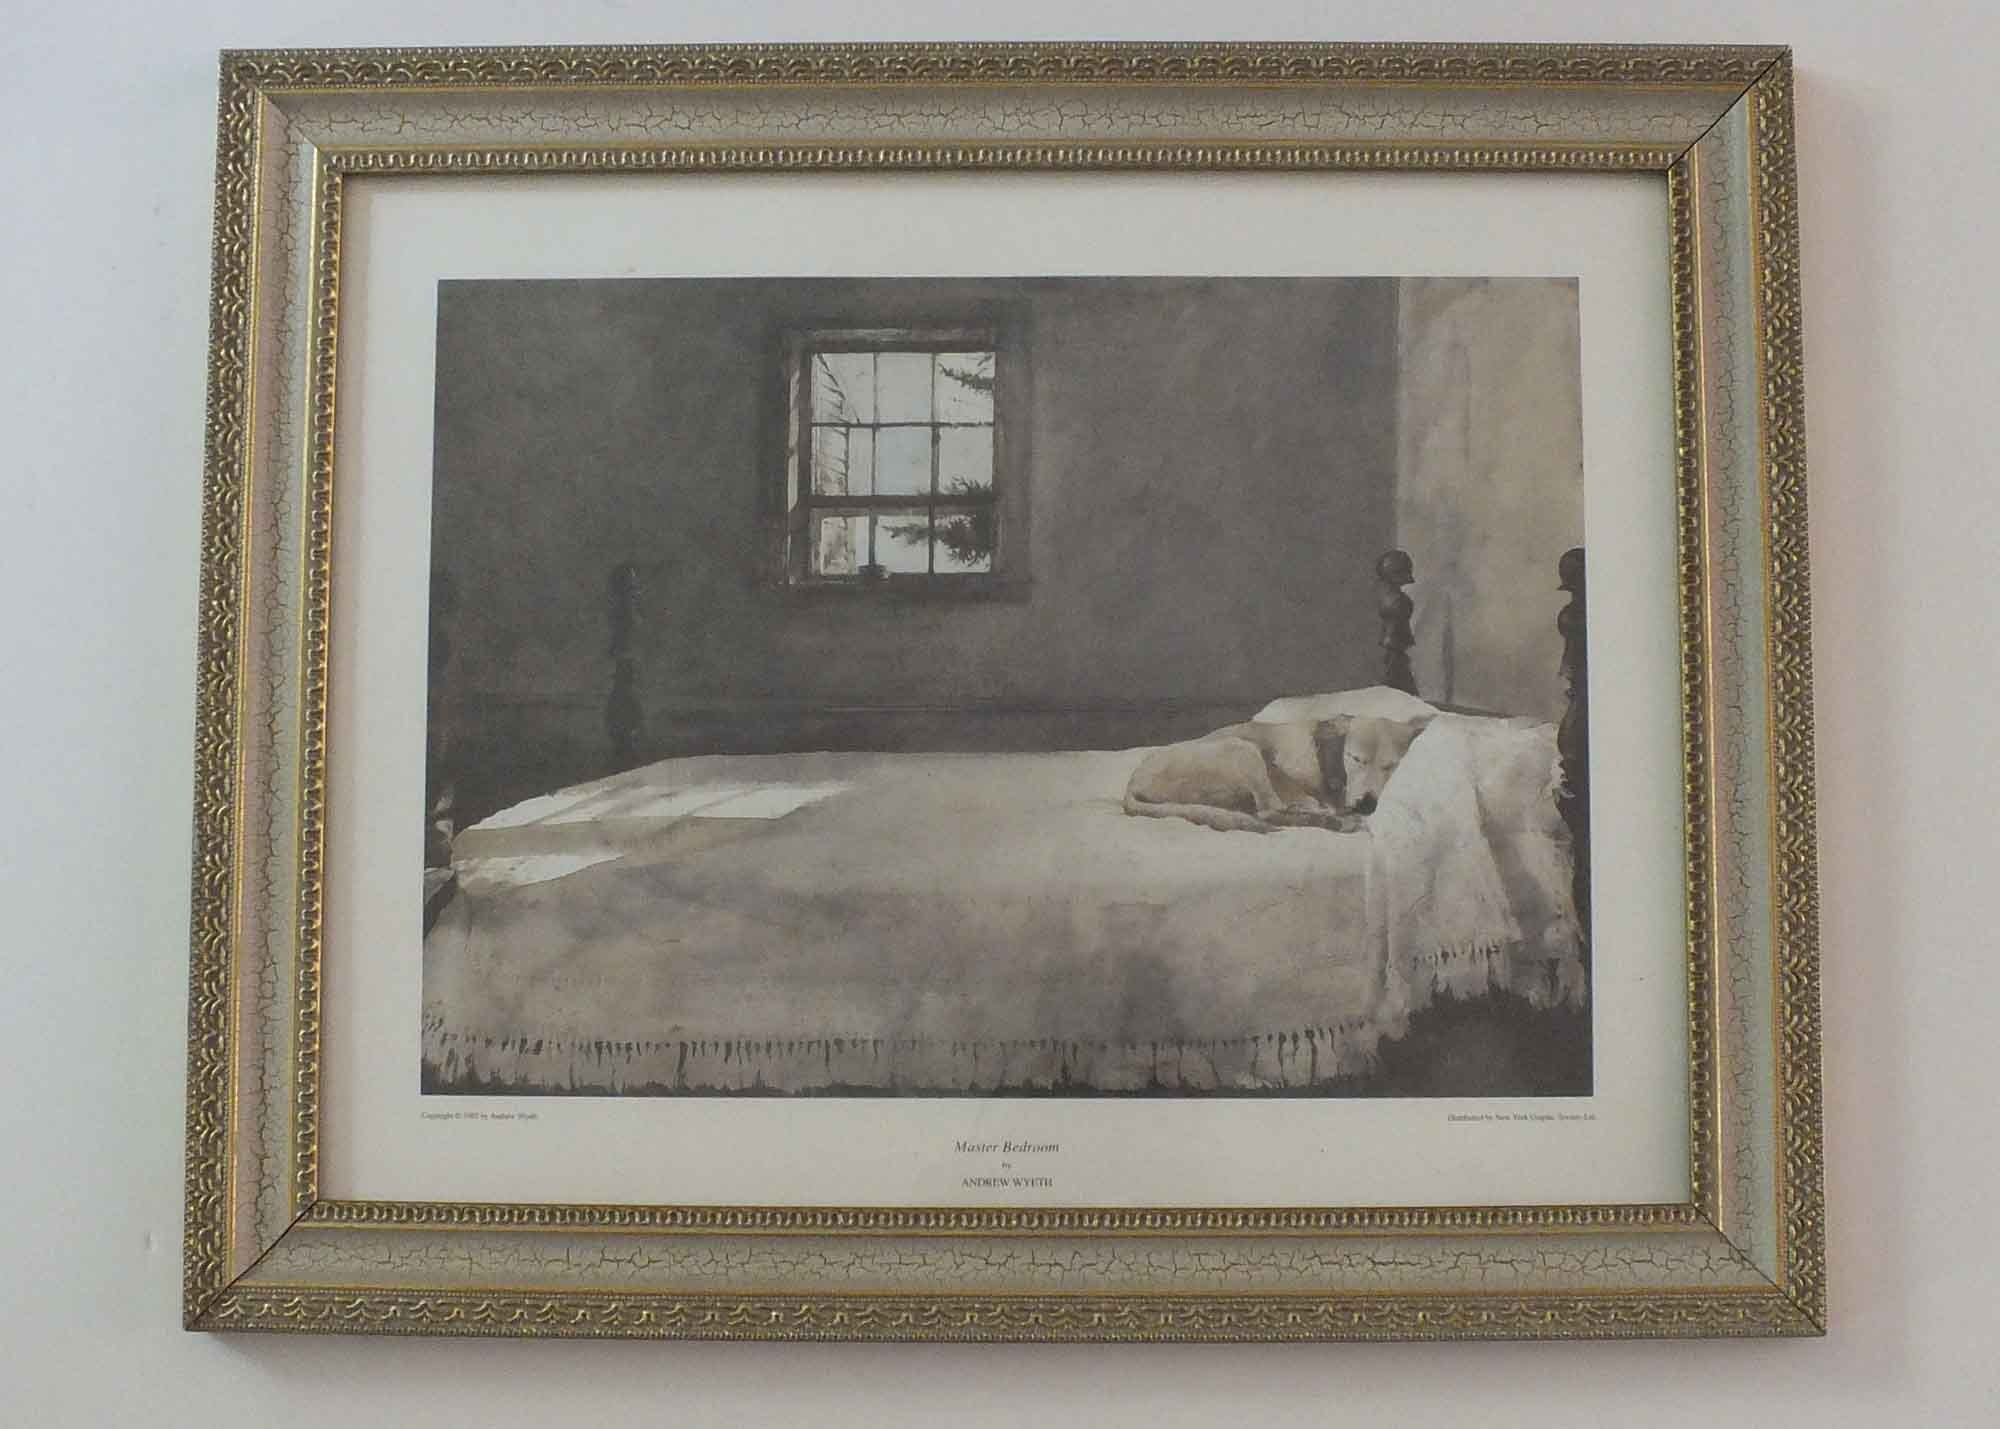 andrew wyeth master bedroom print framed quot master bedroom quot print by andrew wyeth ebth 20215